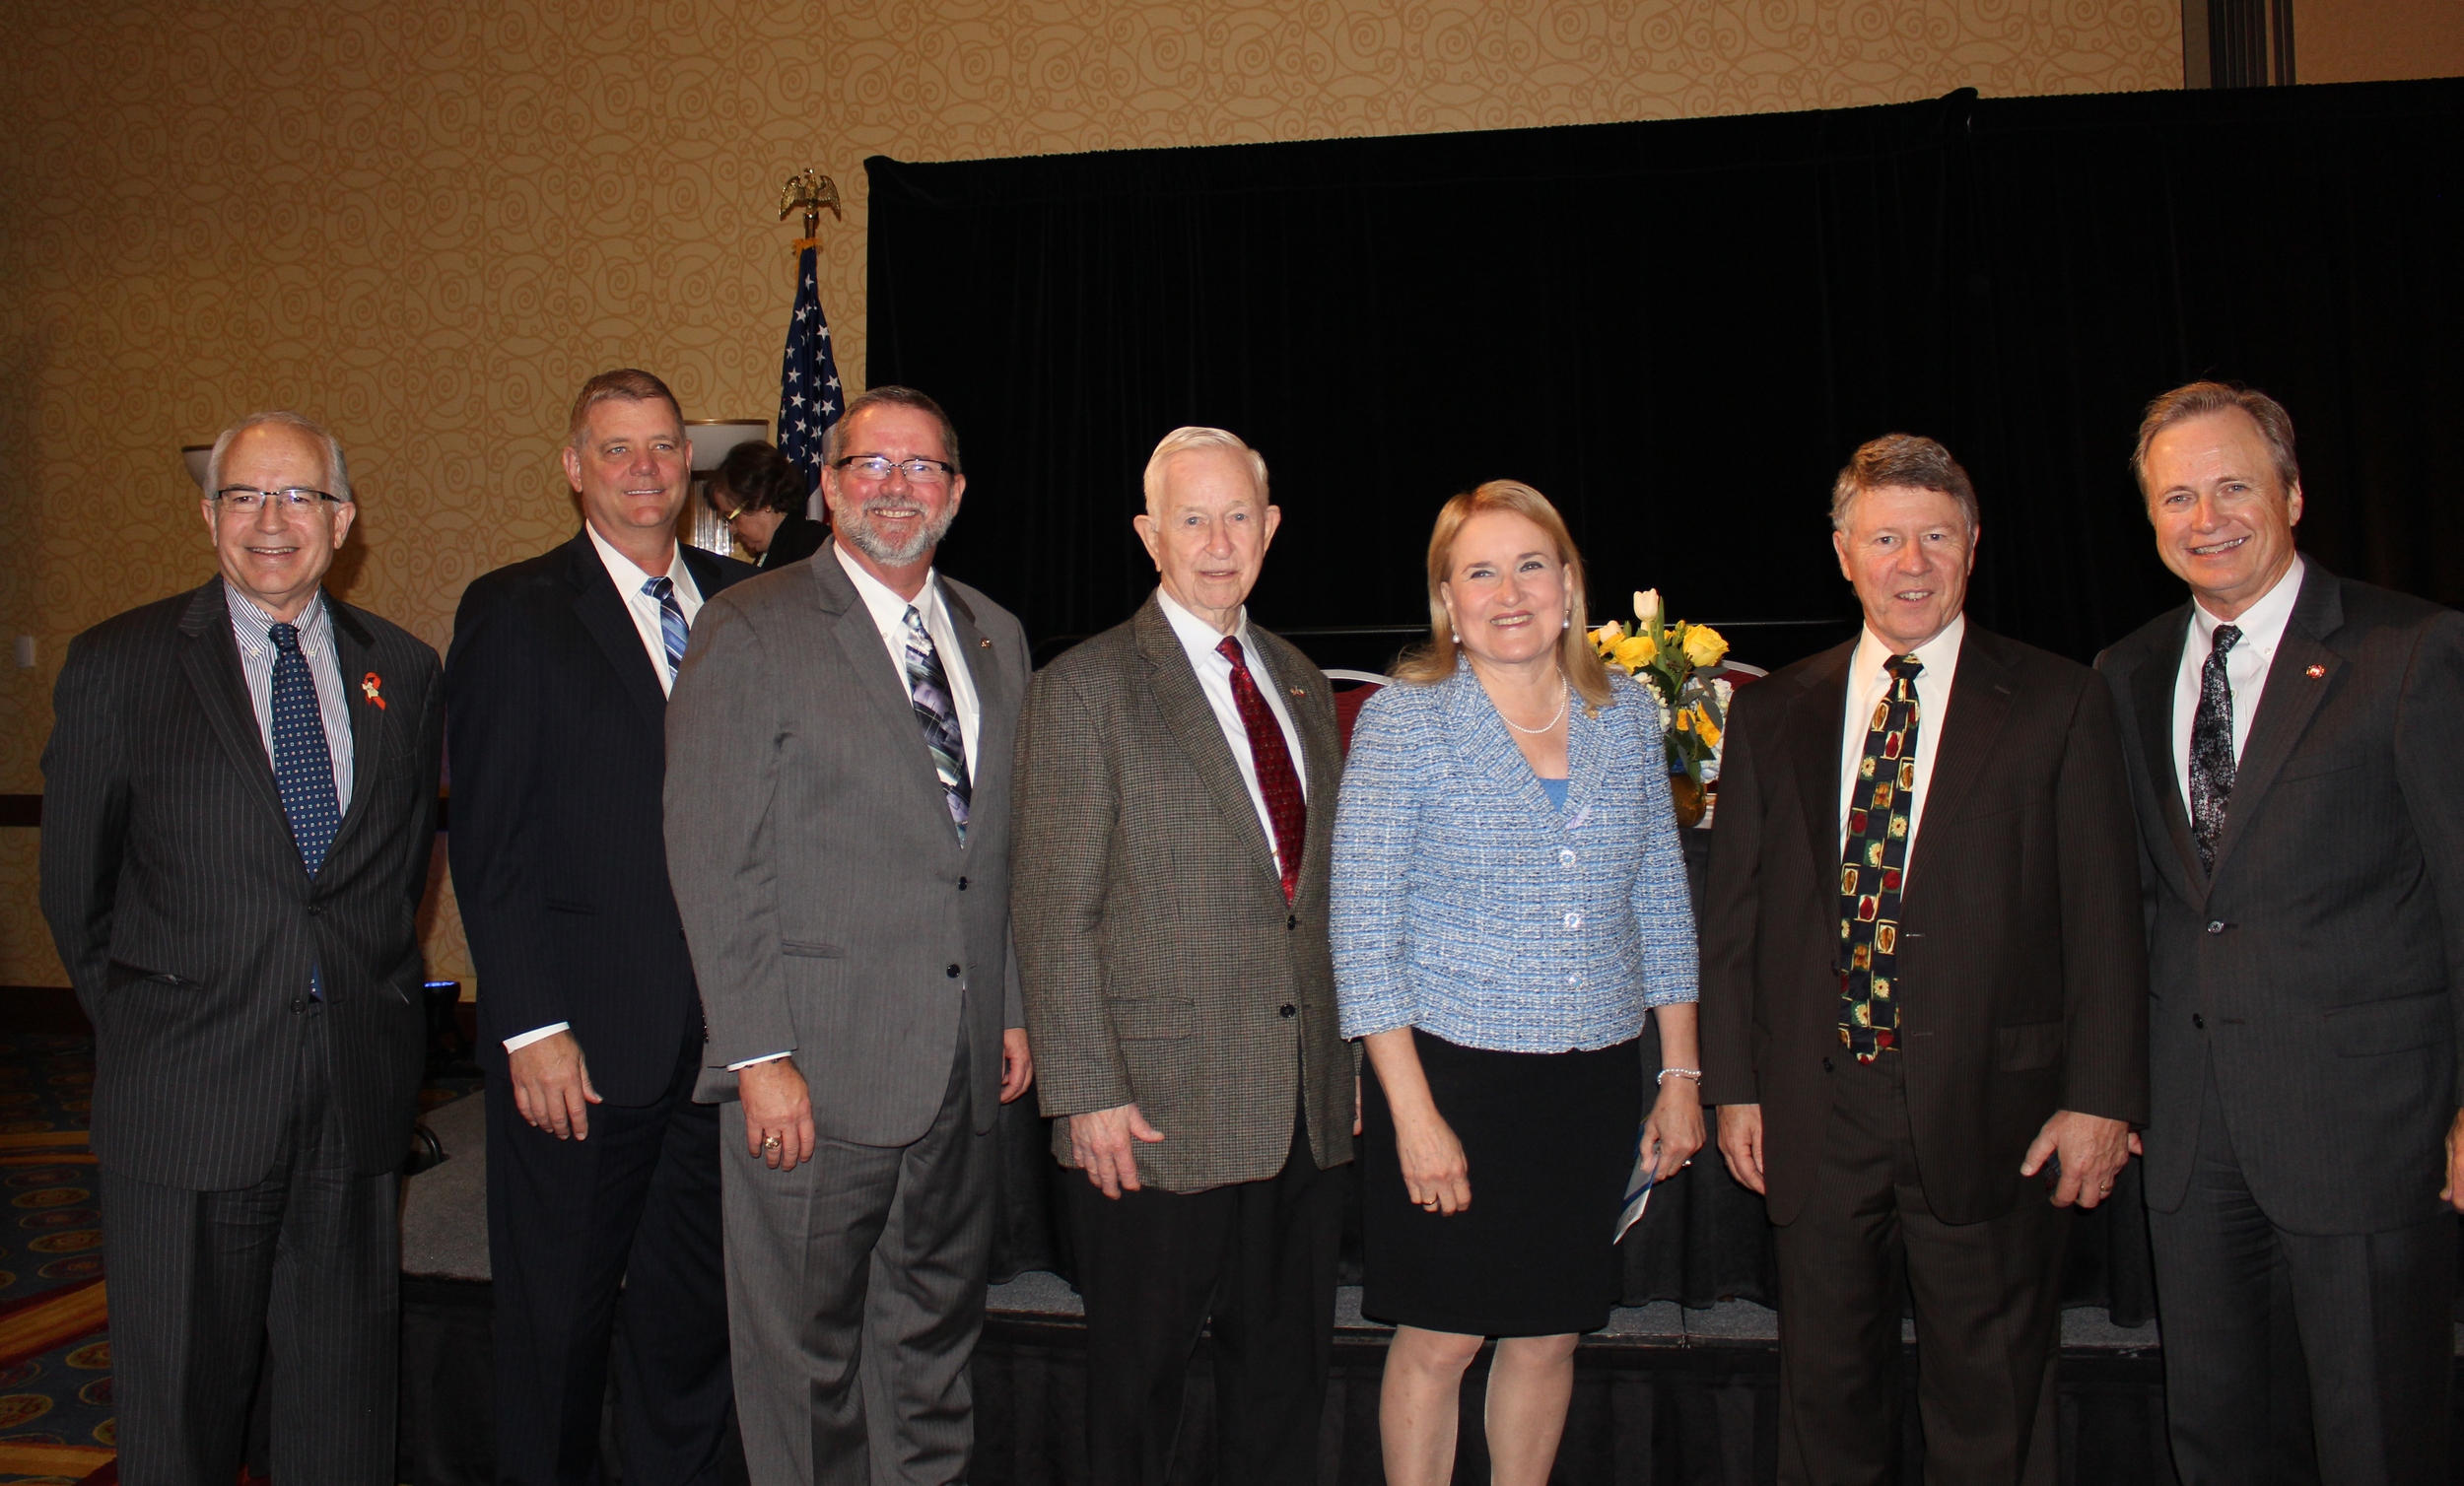 Baytran State of the Counties Lunch 05-12-16 270.JPG